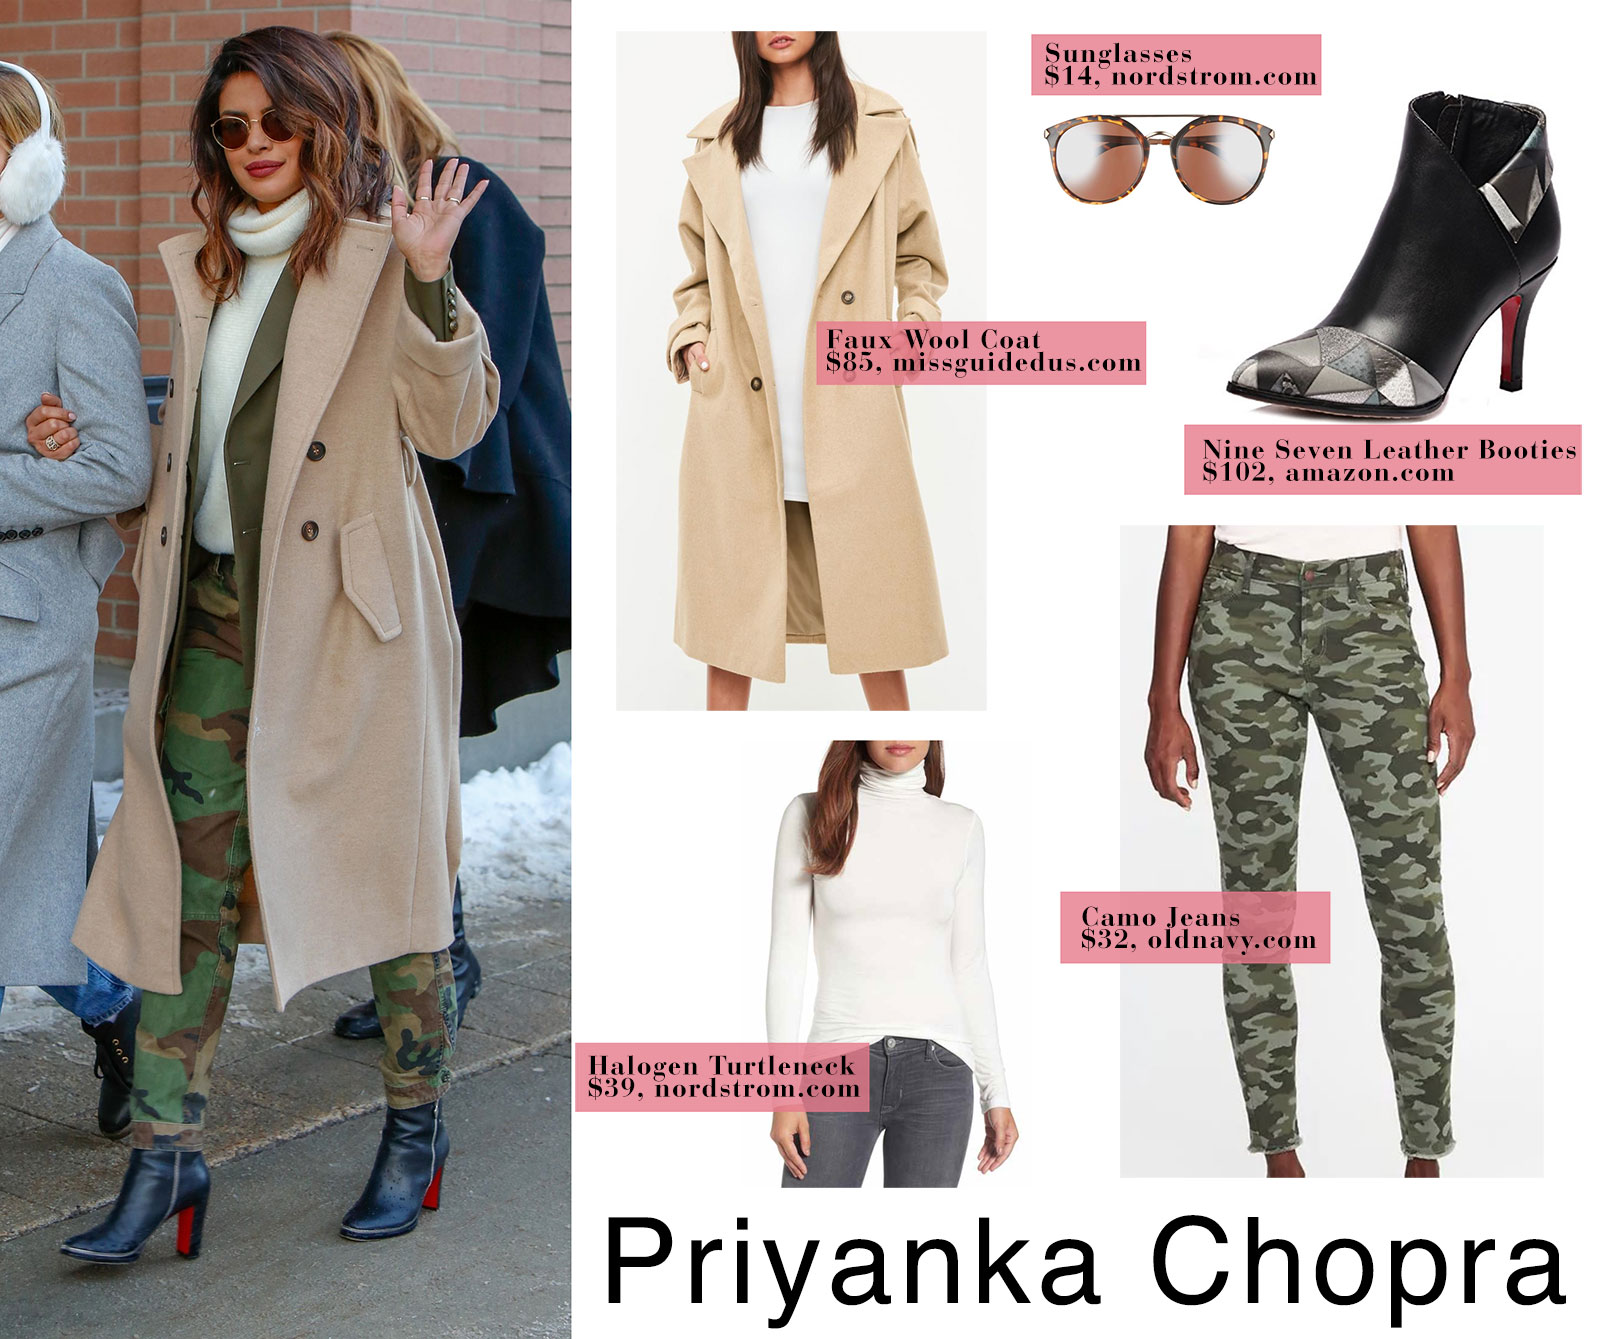 Priyanka Chopra in camel coat and camo pants